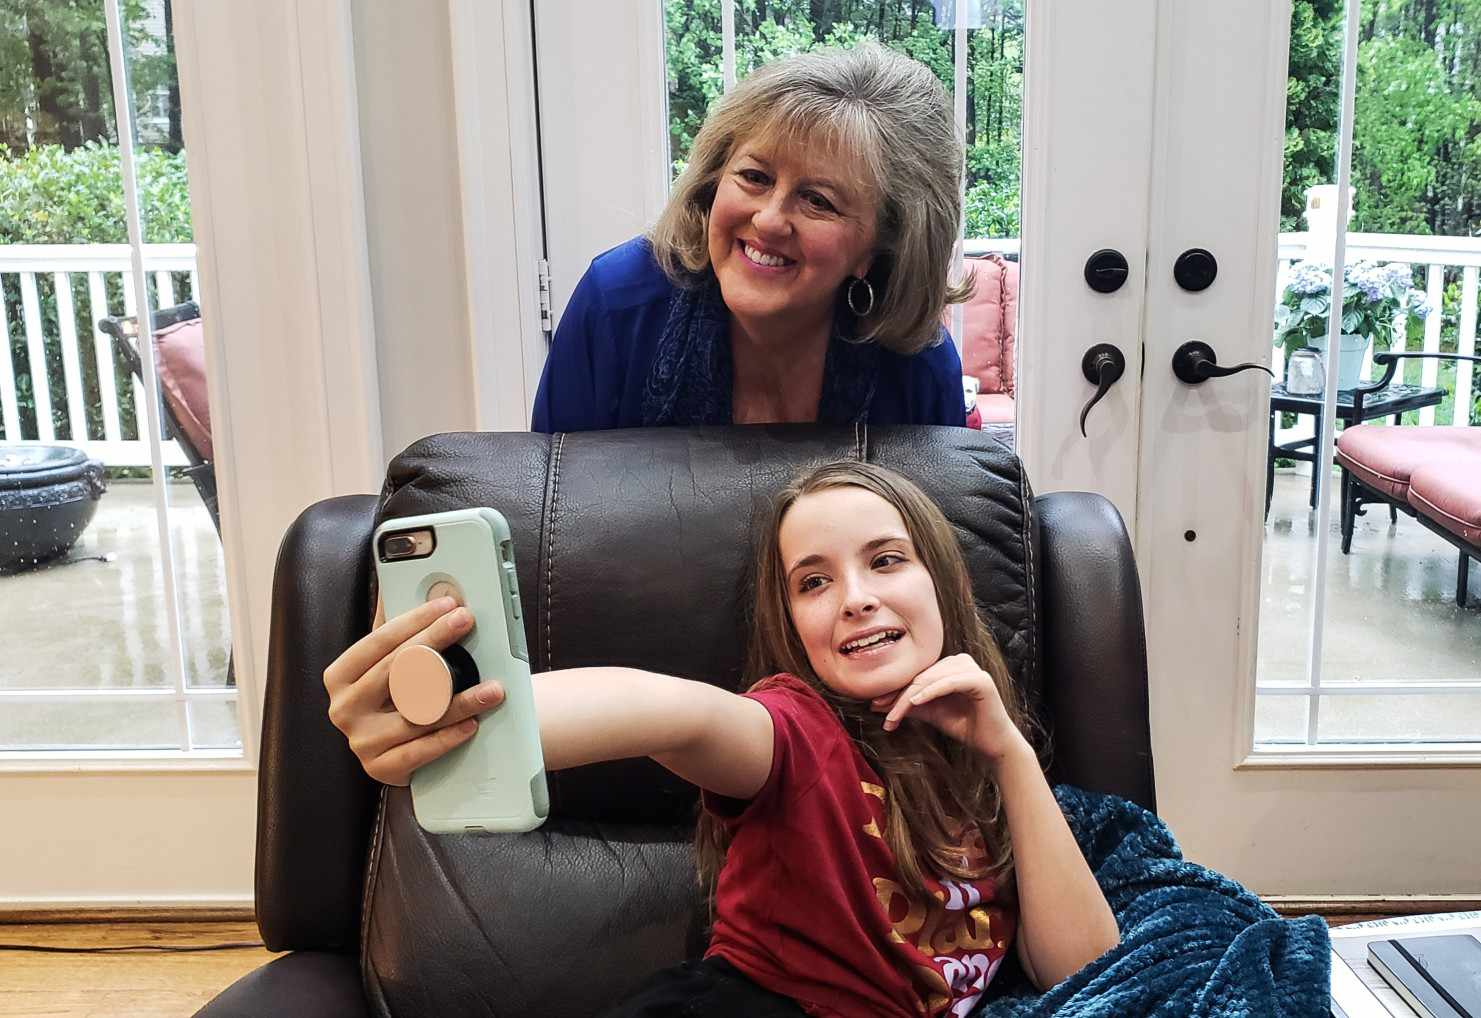 A young person snapping pictures with a grandparent, using the PopSocket on the phone to hold it in place.